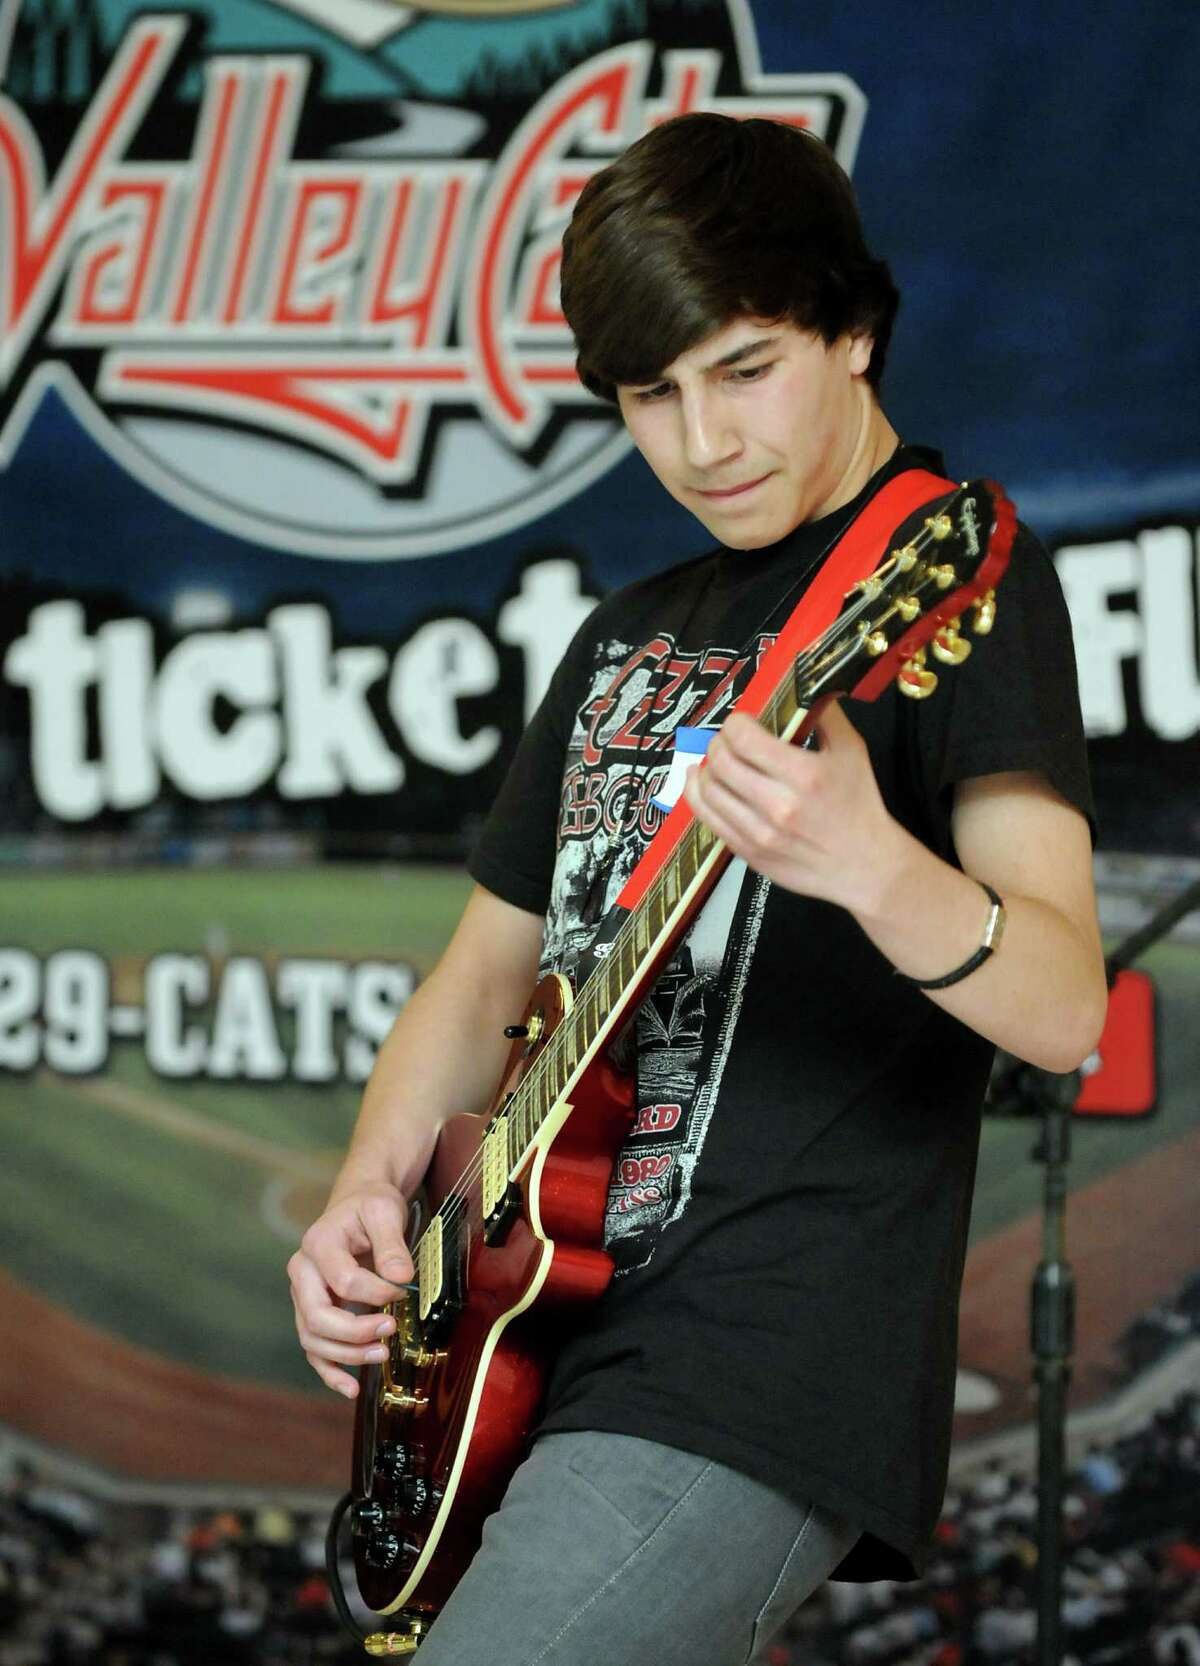 Tristen Jarvis, 16, of Niskayuna plays a Jimi Hendrix version of the Star Spangled Banner during 2nd Annual National Anthem tryouts for the Tri-City ValleyCats 2012 baseball season on Saturday, May 19, 2012, at Crossgates Mall in Guilderland, N.Y. Jarvis plays bass for the Empire Youth Orchestra. (Cindy Schultz / Times Union)